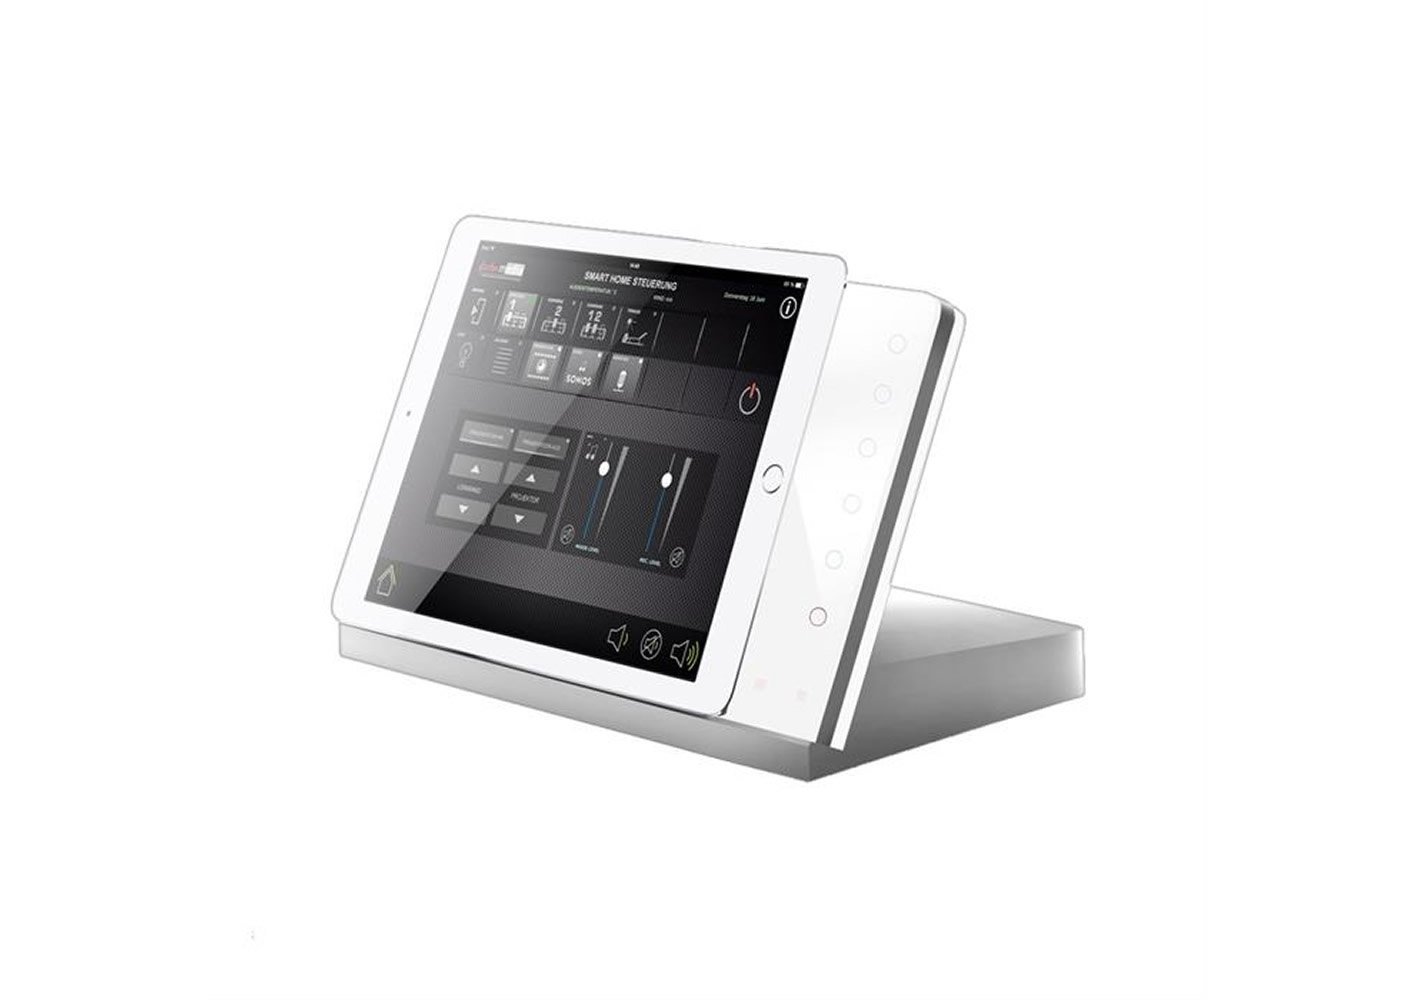 iRoom iTop Plus iPad Docking Station